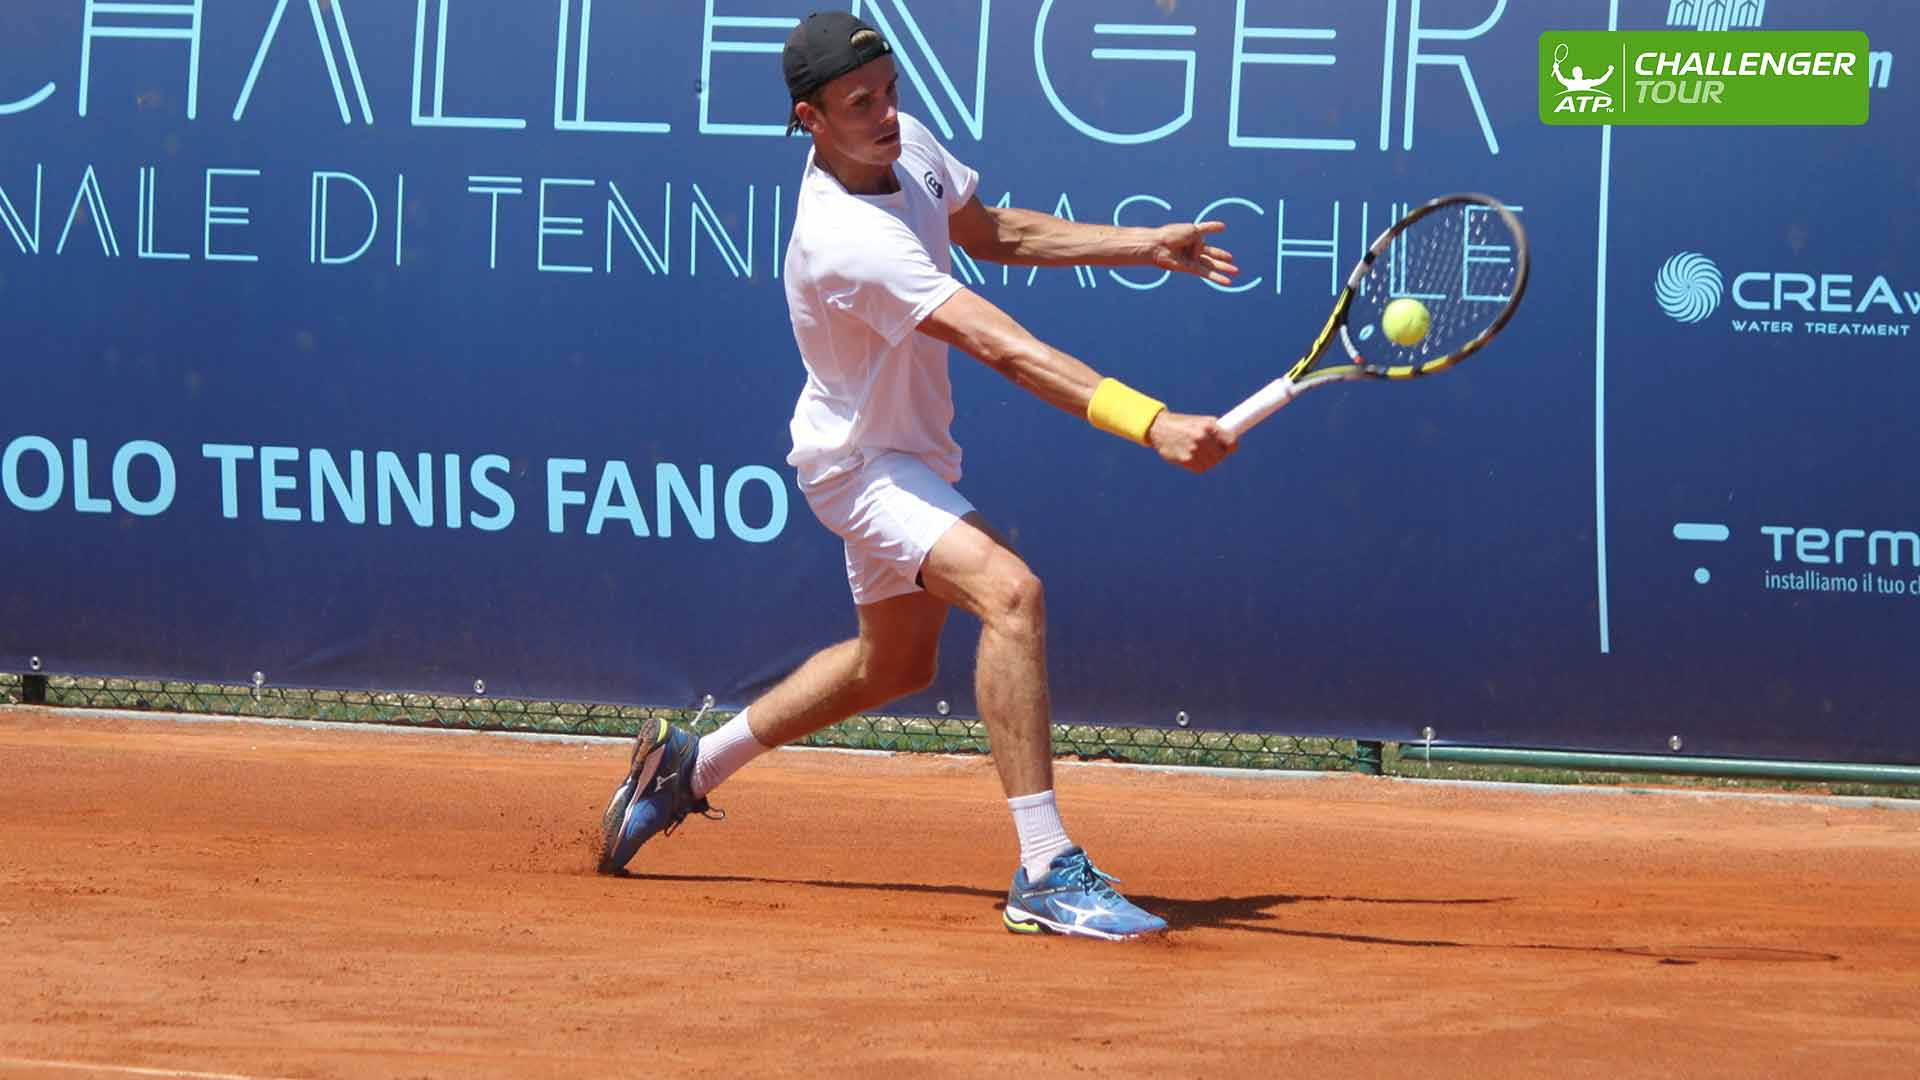 Arthur De Greef is on a six-match win streak on the ATP Challenger Tour.